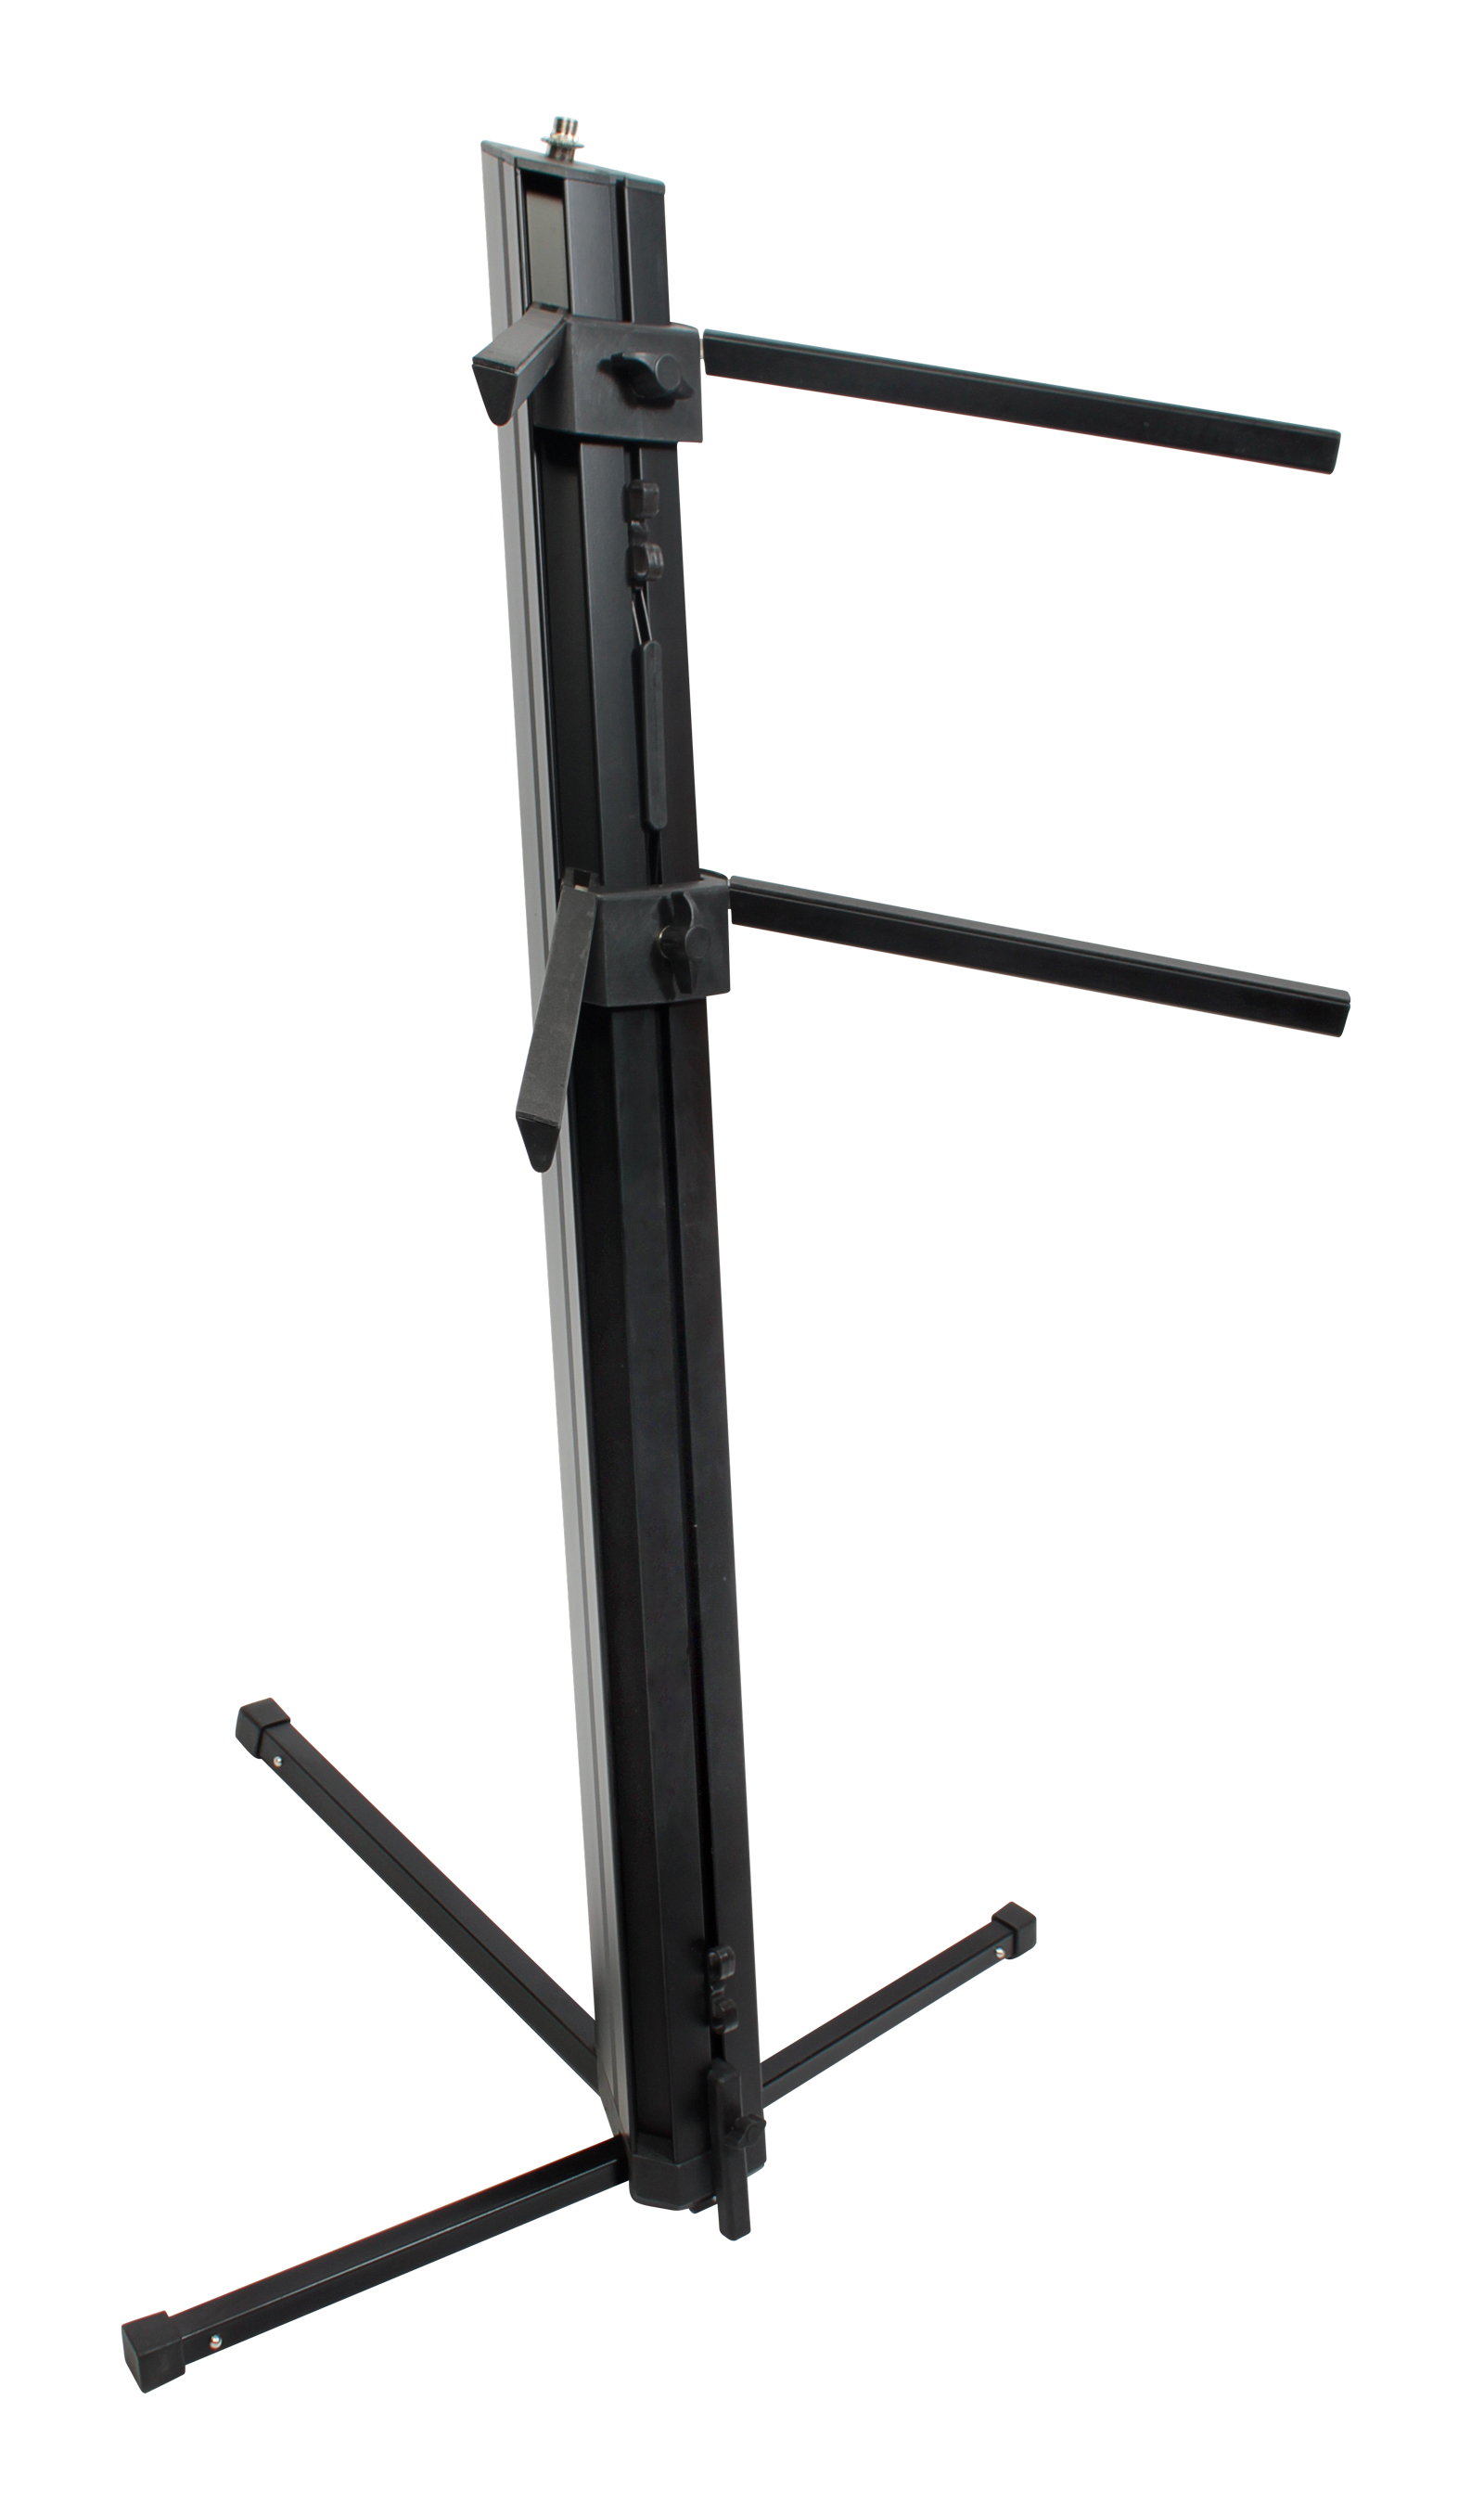 xspro two tier column keyboard stand with microphone mount xkb300b black ebay. Black Bedroom Furniture Sets. Home Design Ideas